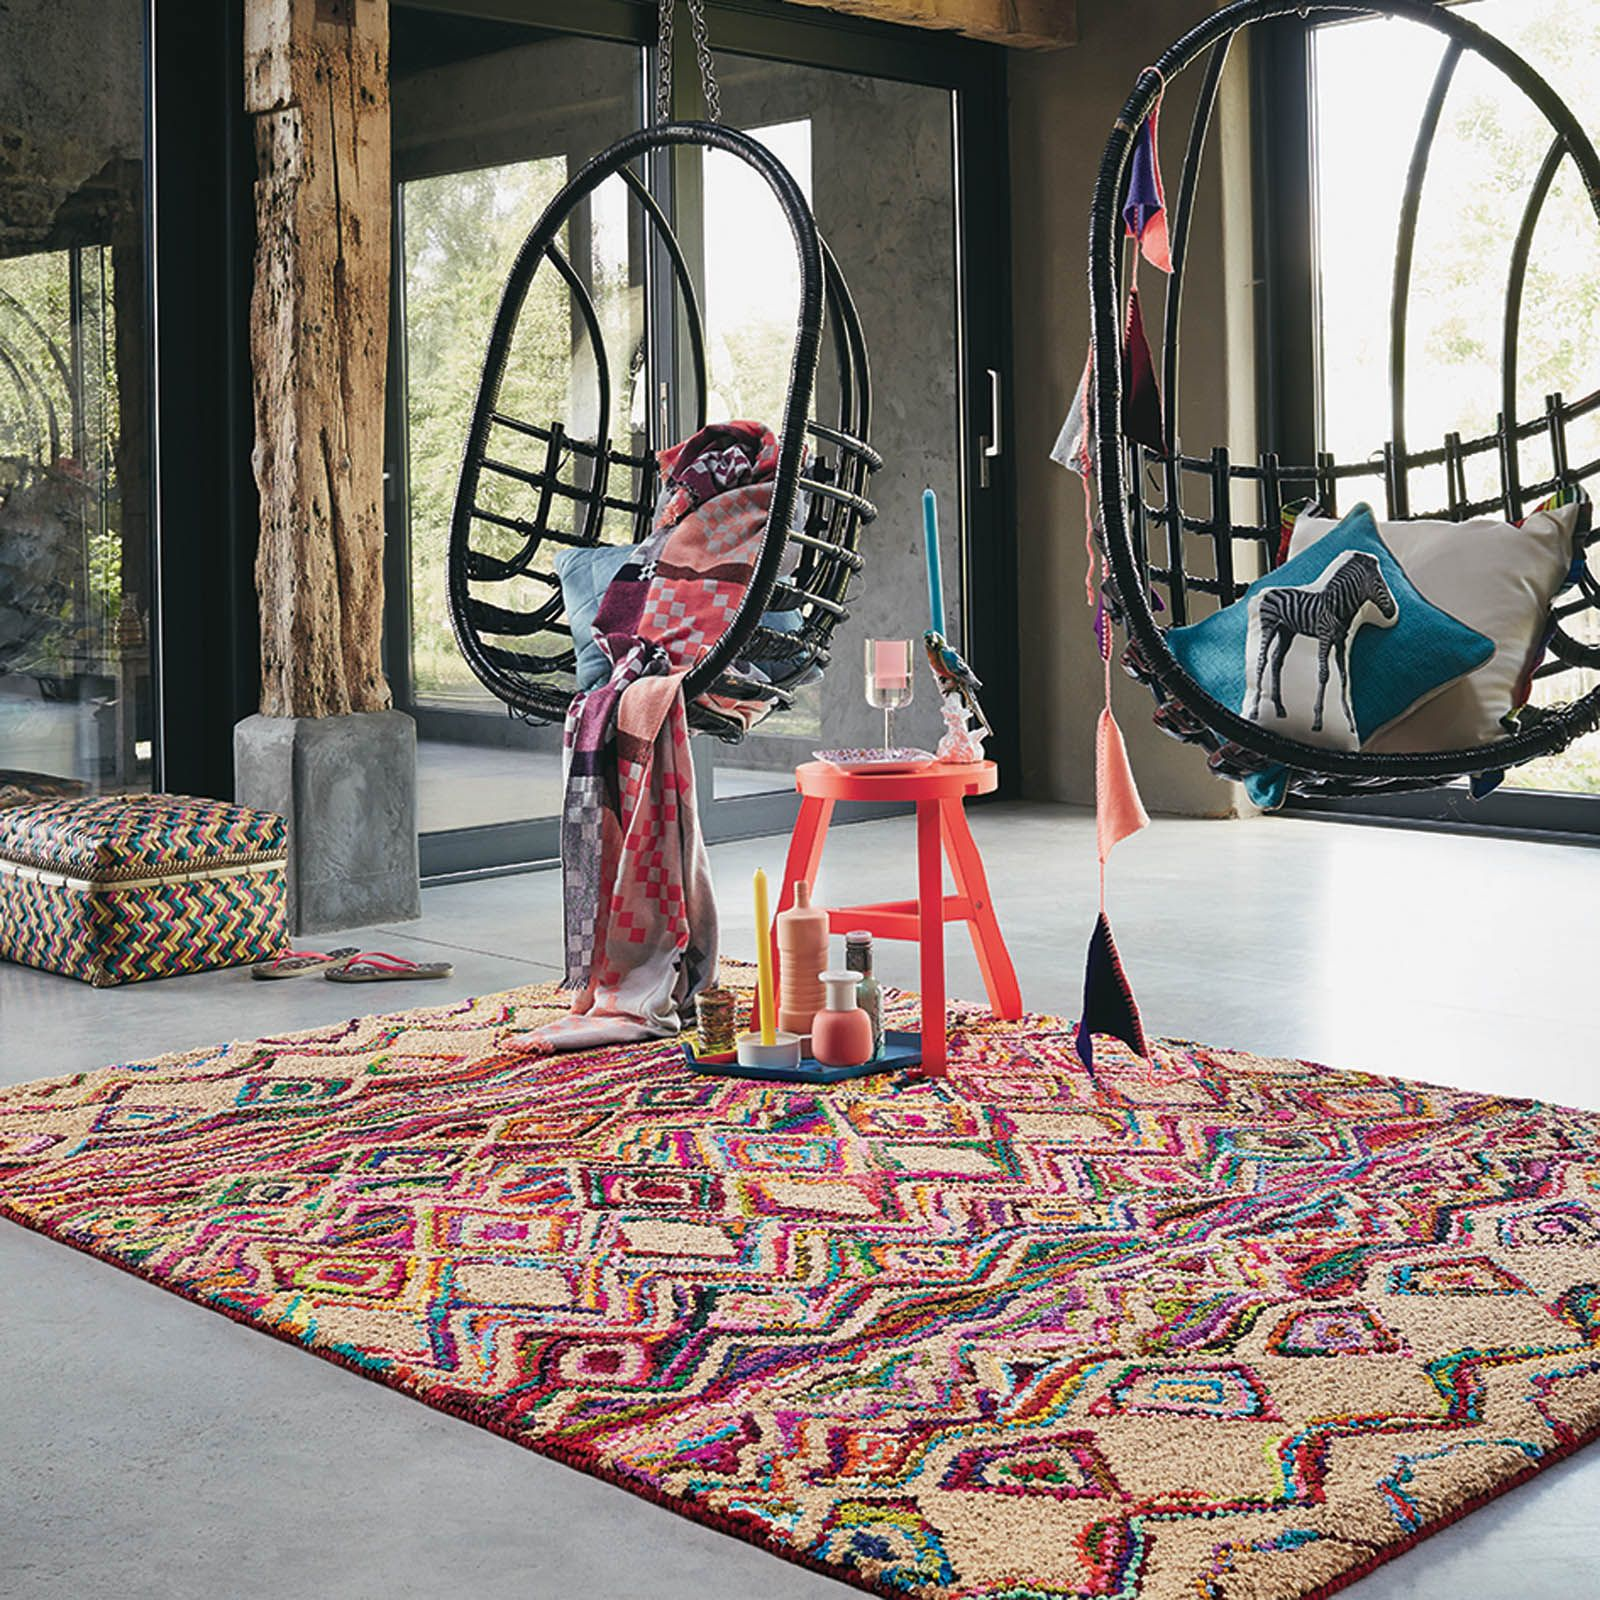 Ibiza Costa Rugs 67600 By Brink And Campman Handwoven Using Natural Jute With A Vibrant Multi